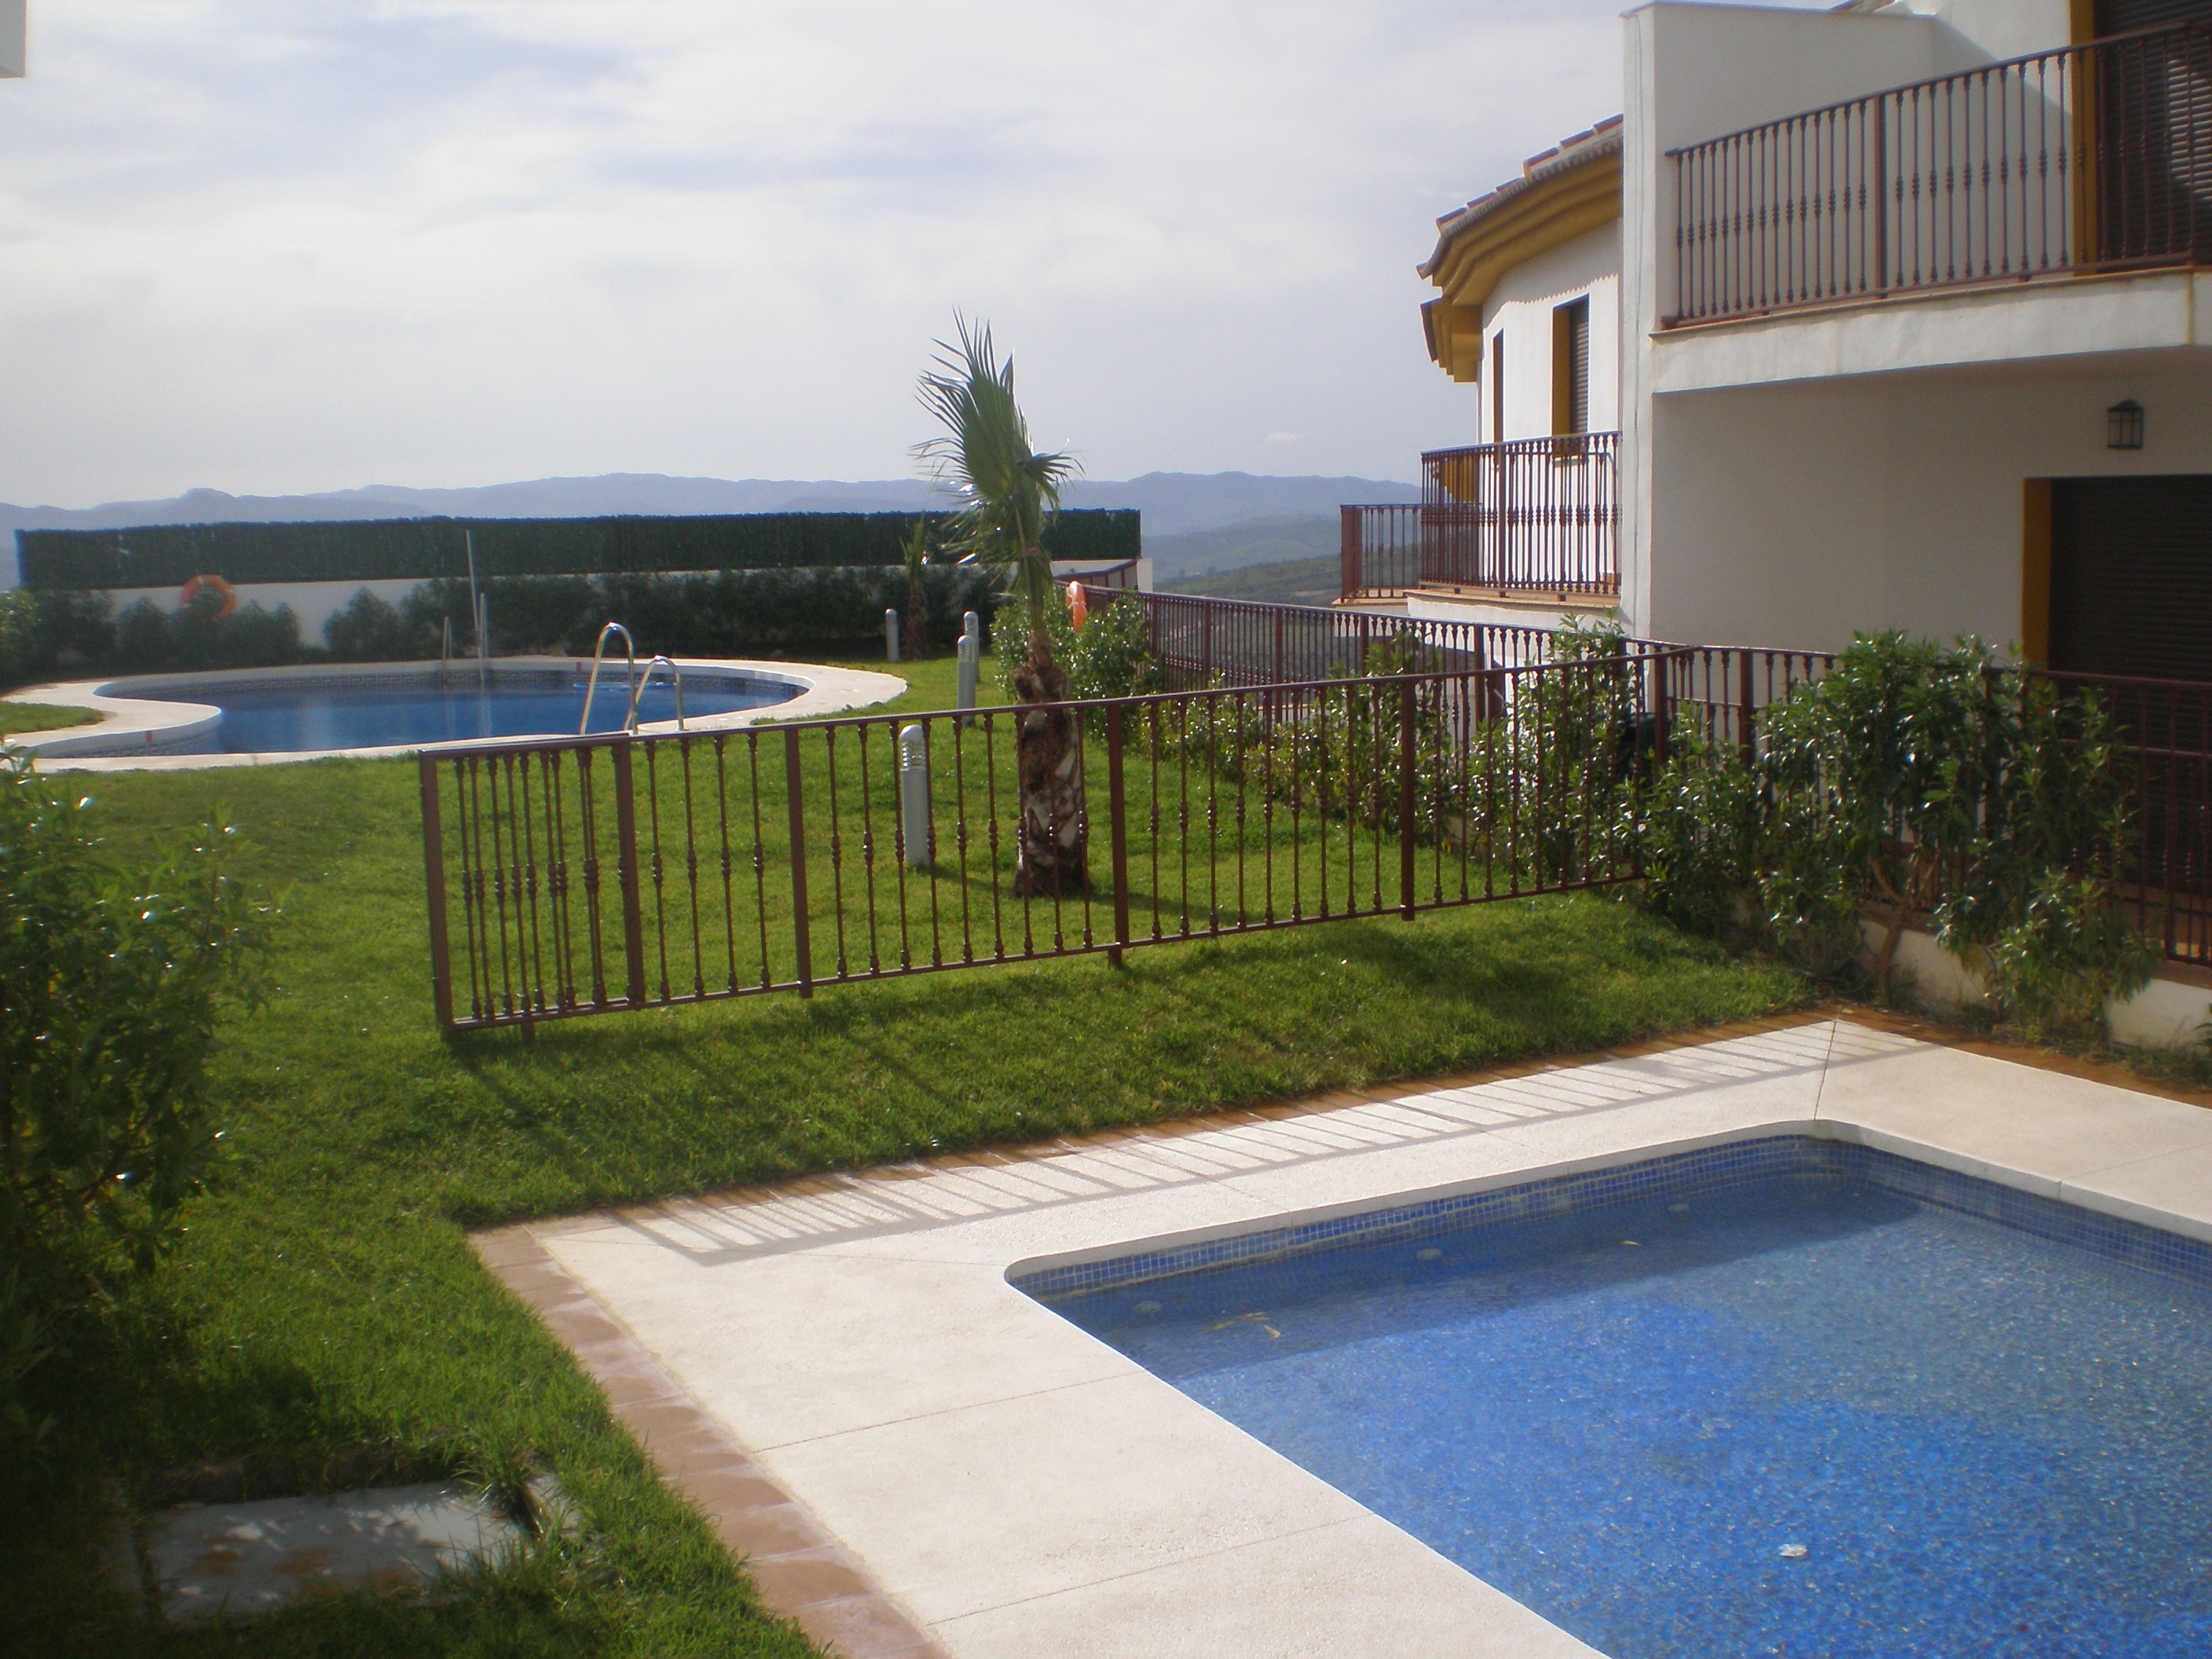 2 BEDROOM FLAT IN ALCAUCIN from €200/week  Up To 4 People